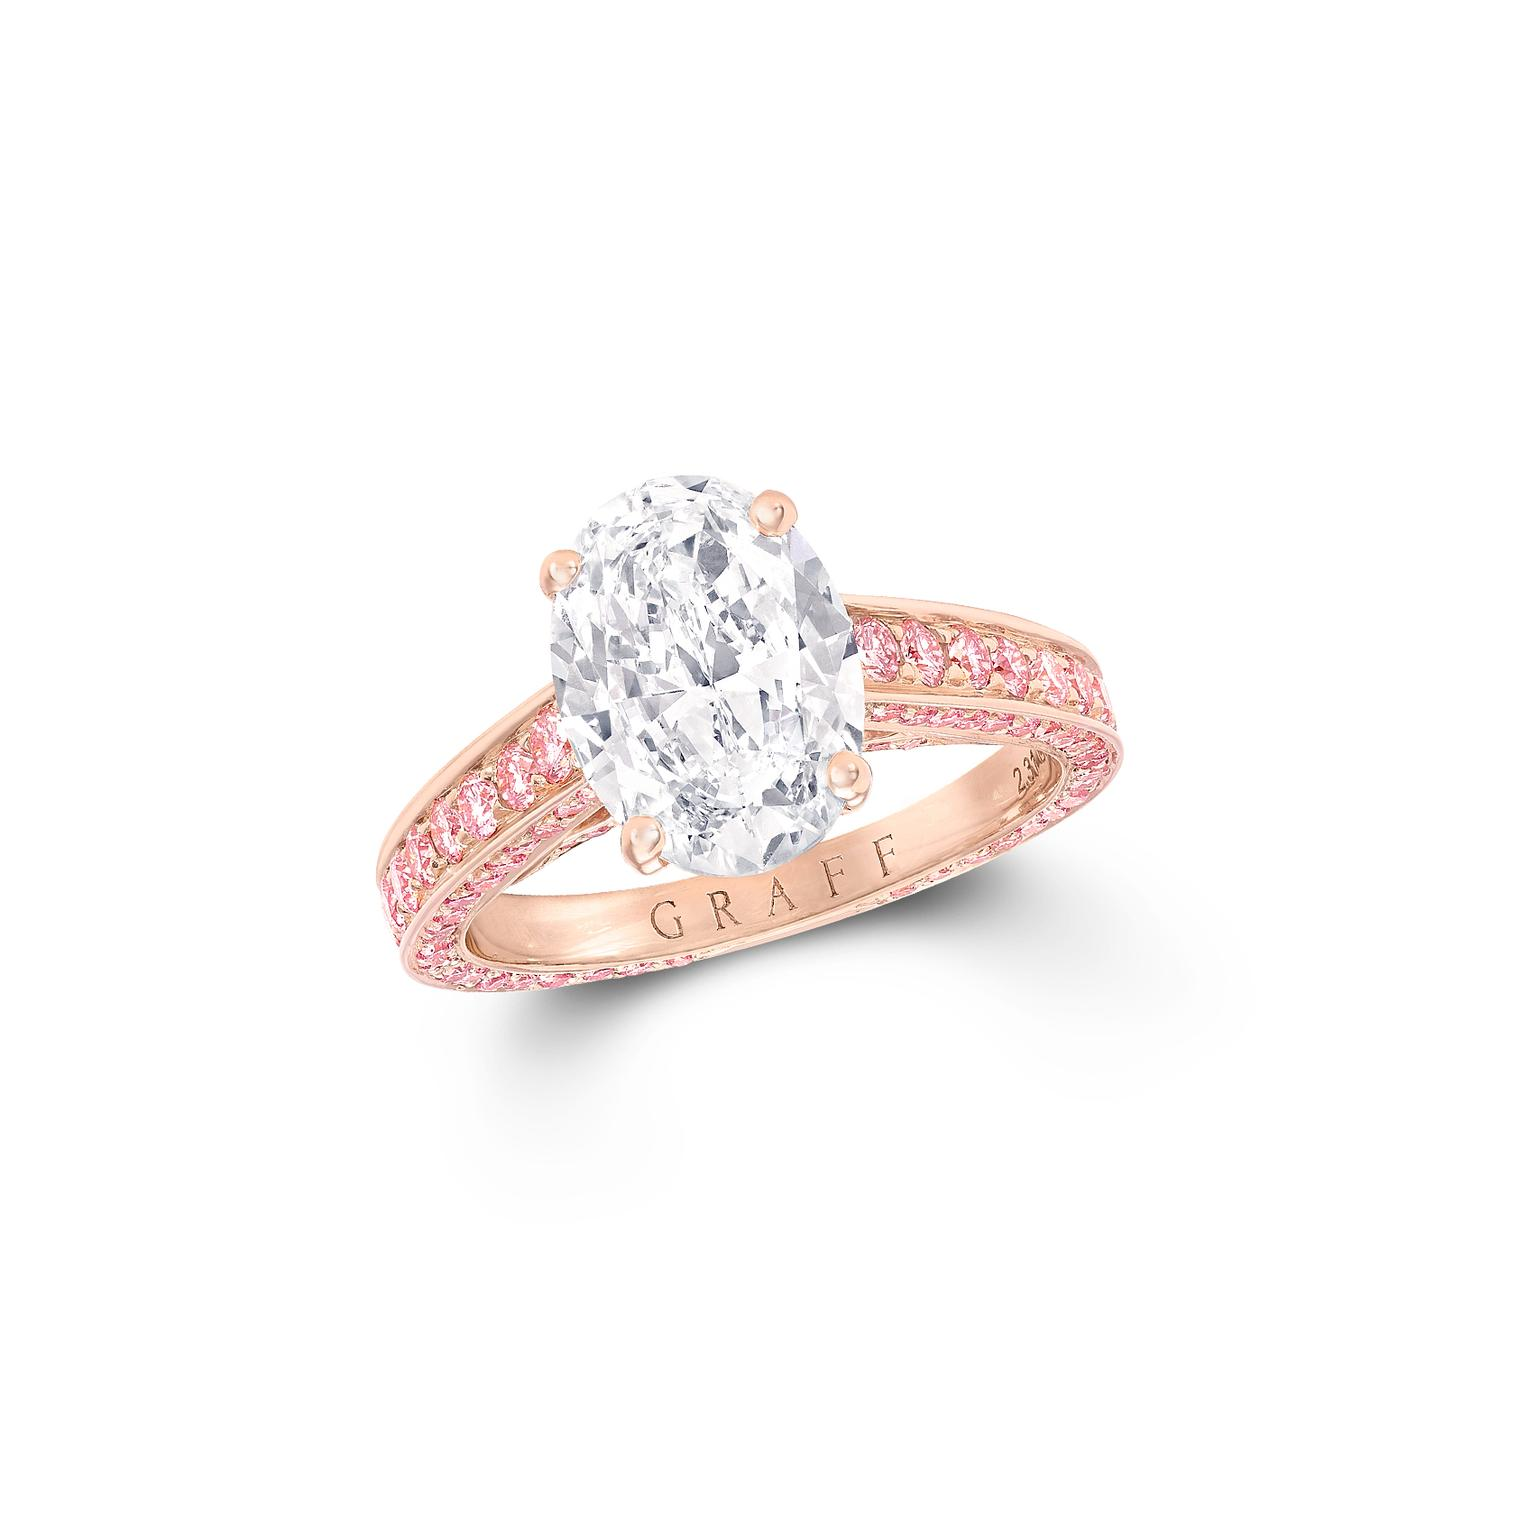 flame oval diamond engagement ring with pink diamonds graff